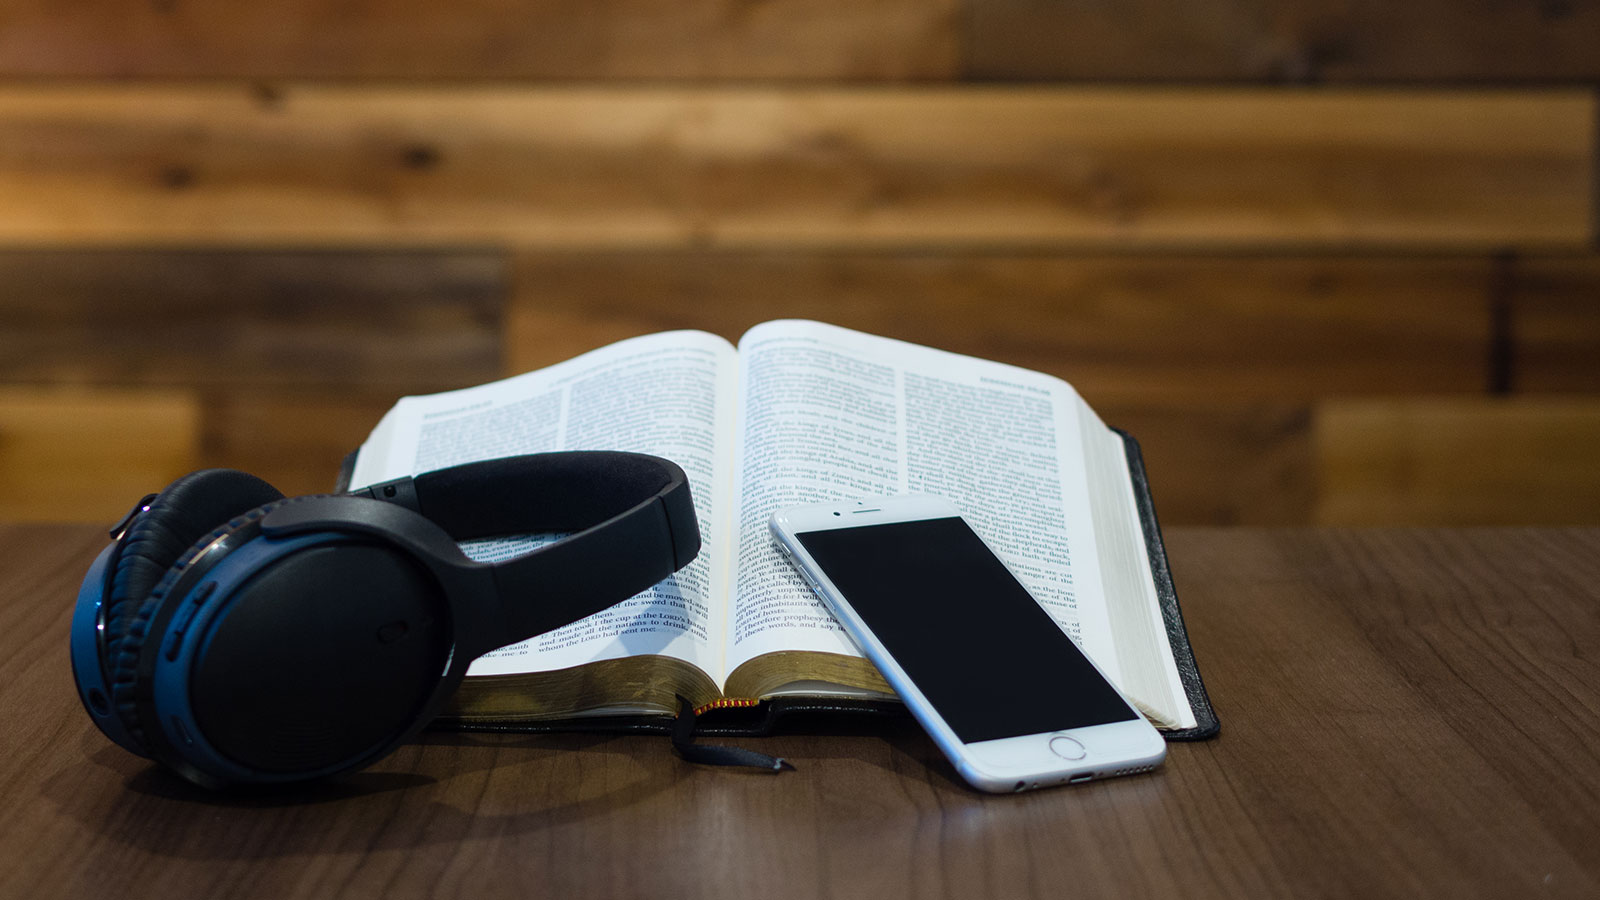 iPhone and headphones laying on an open Bible